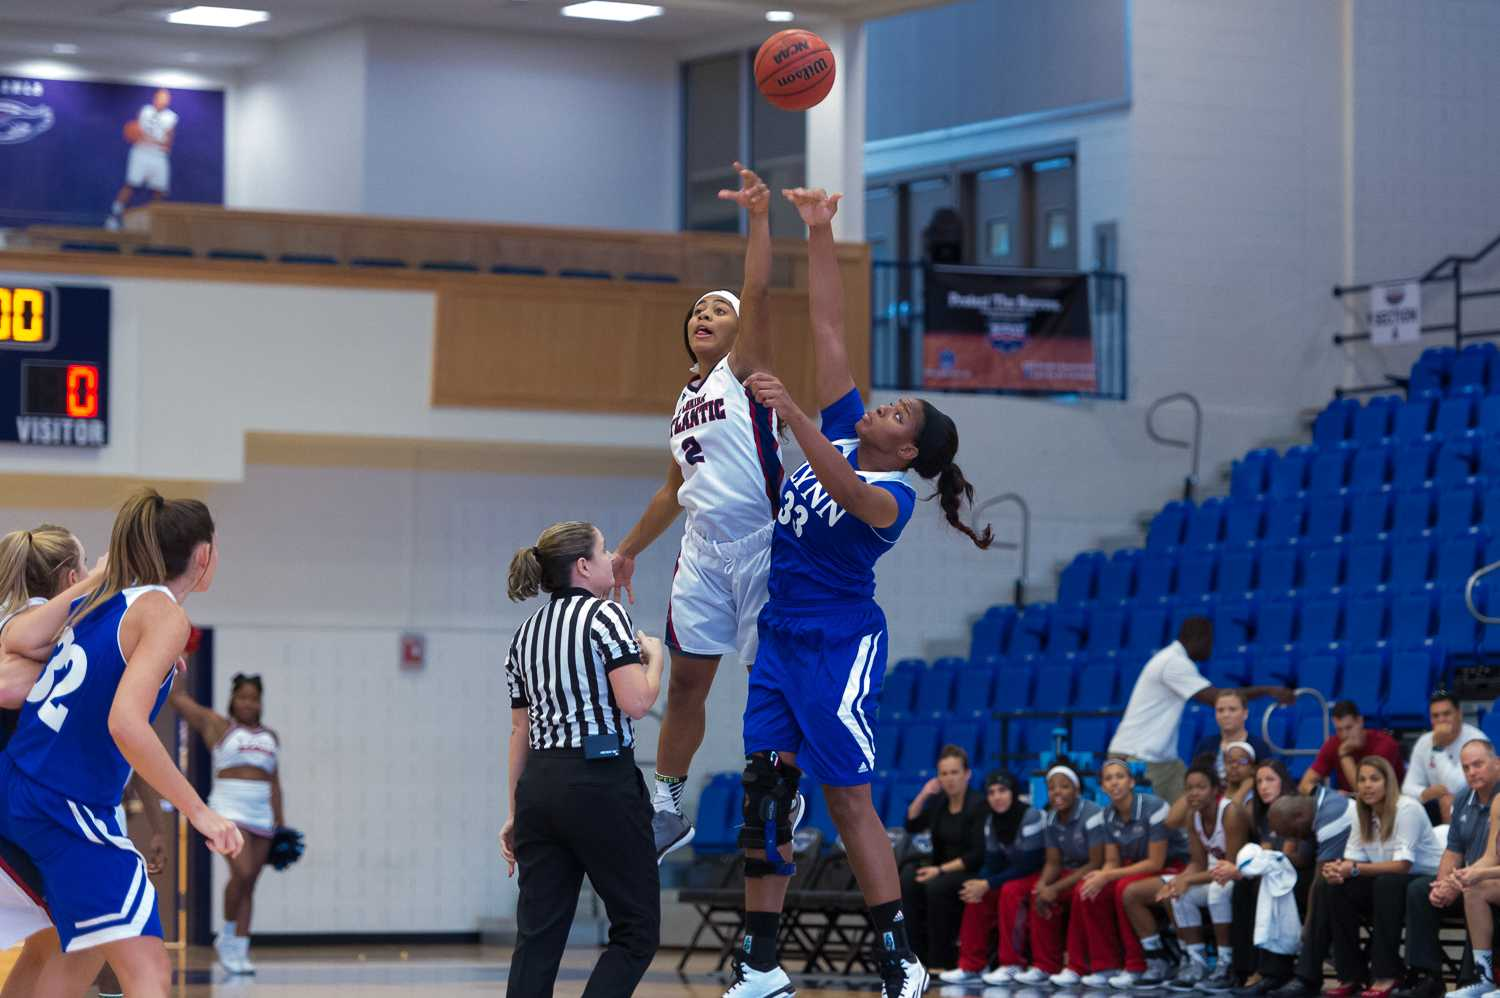 Shaneese Bailey wins a jumpball for the Owis in a game earlier this season versus Lynn University. Photo by Max Jackson